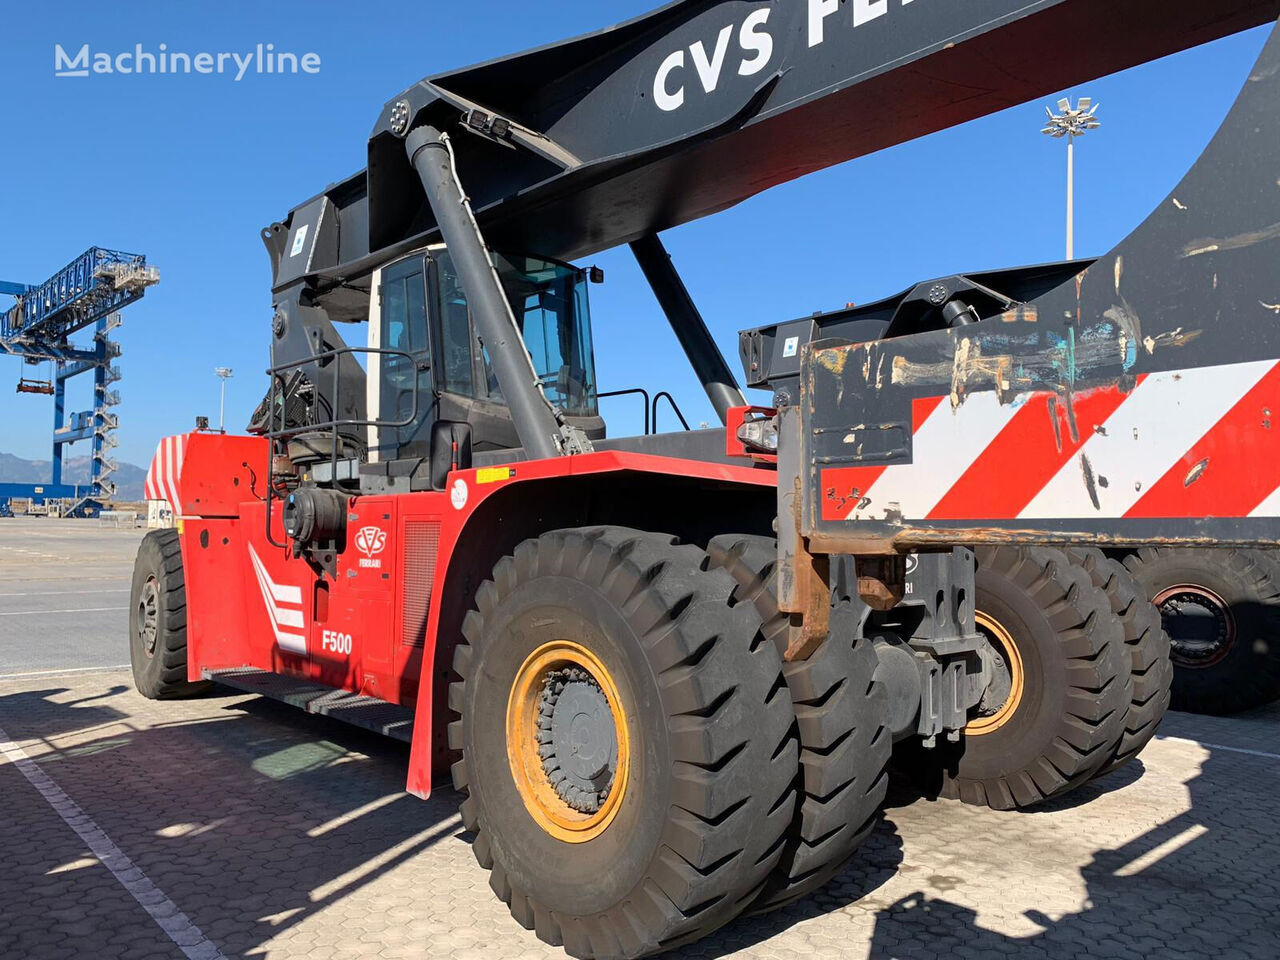 CVS Ferrari F500 reach stacker